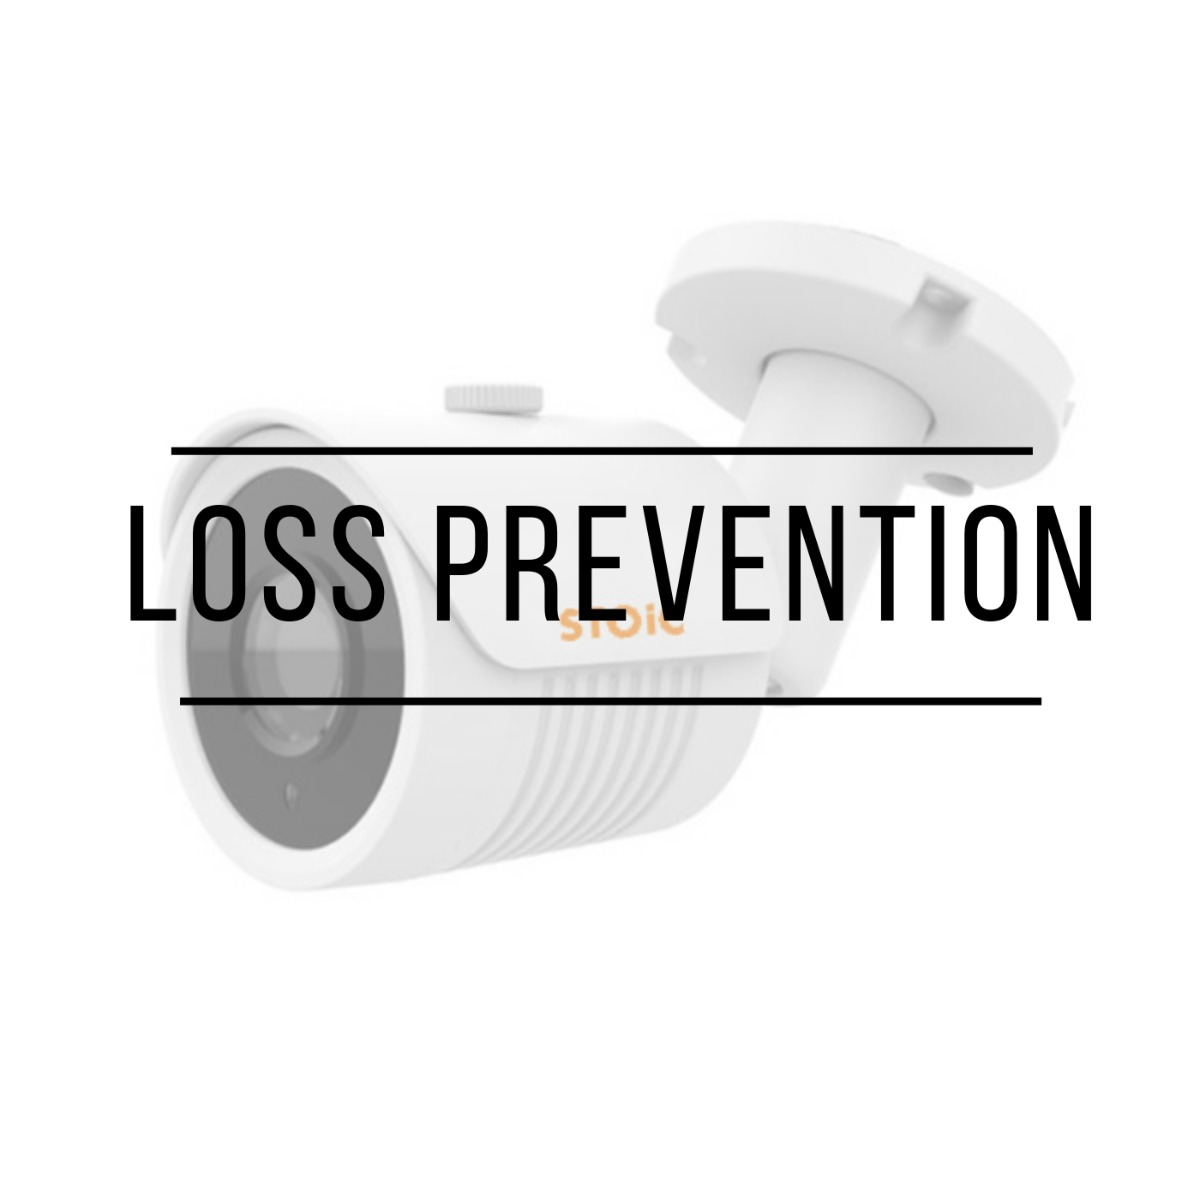 Loss Prevention helps keep your store safe and secure in Hawaii.